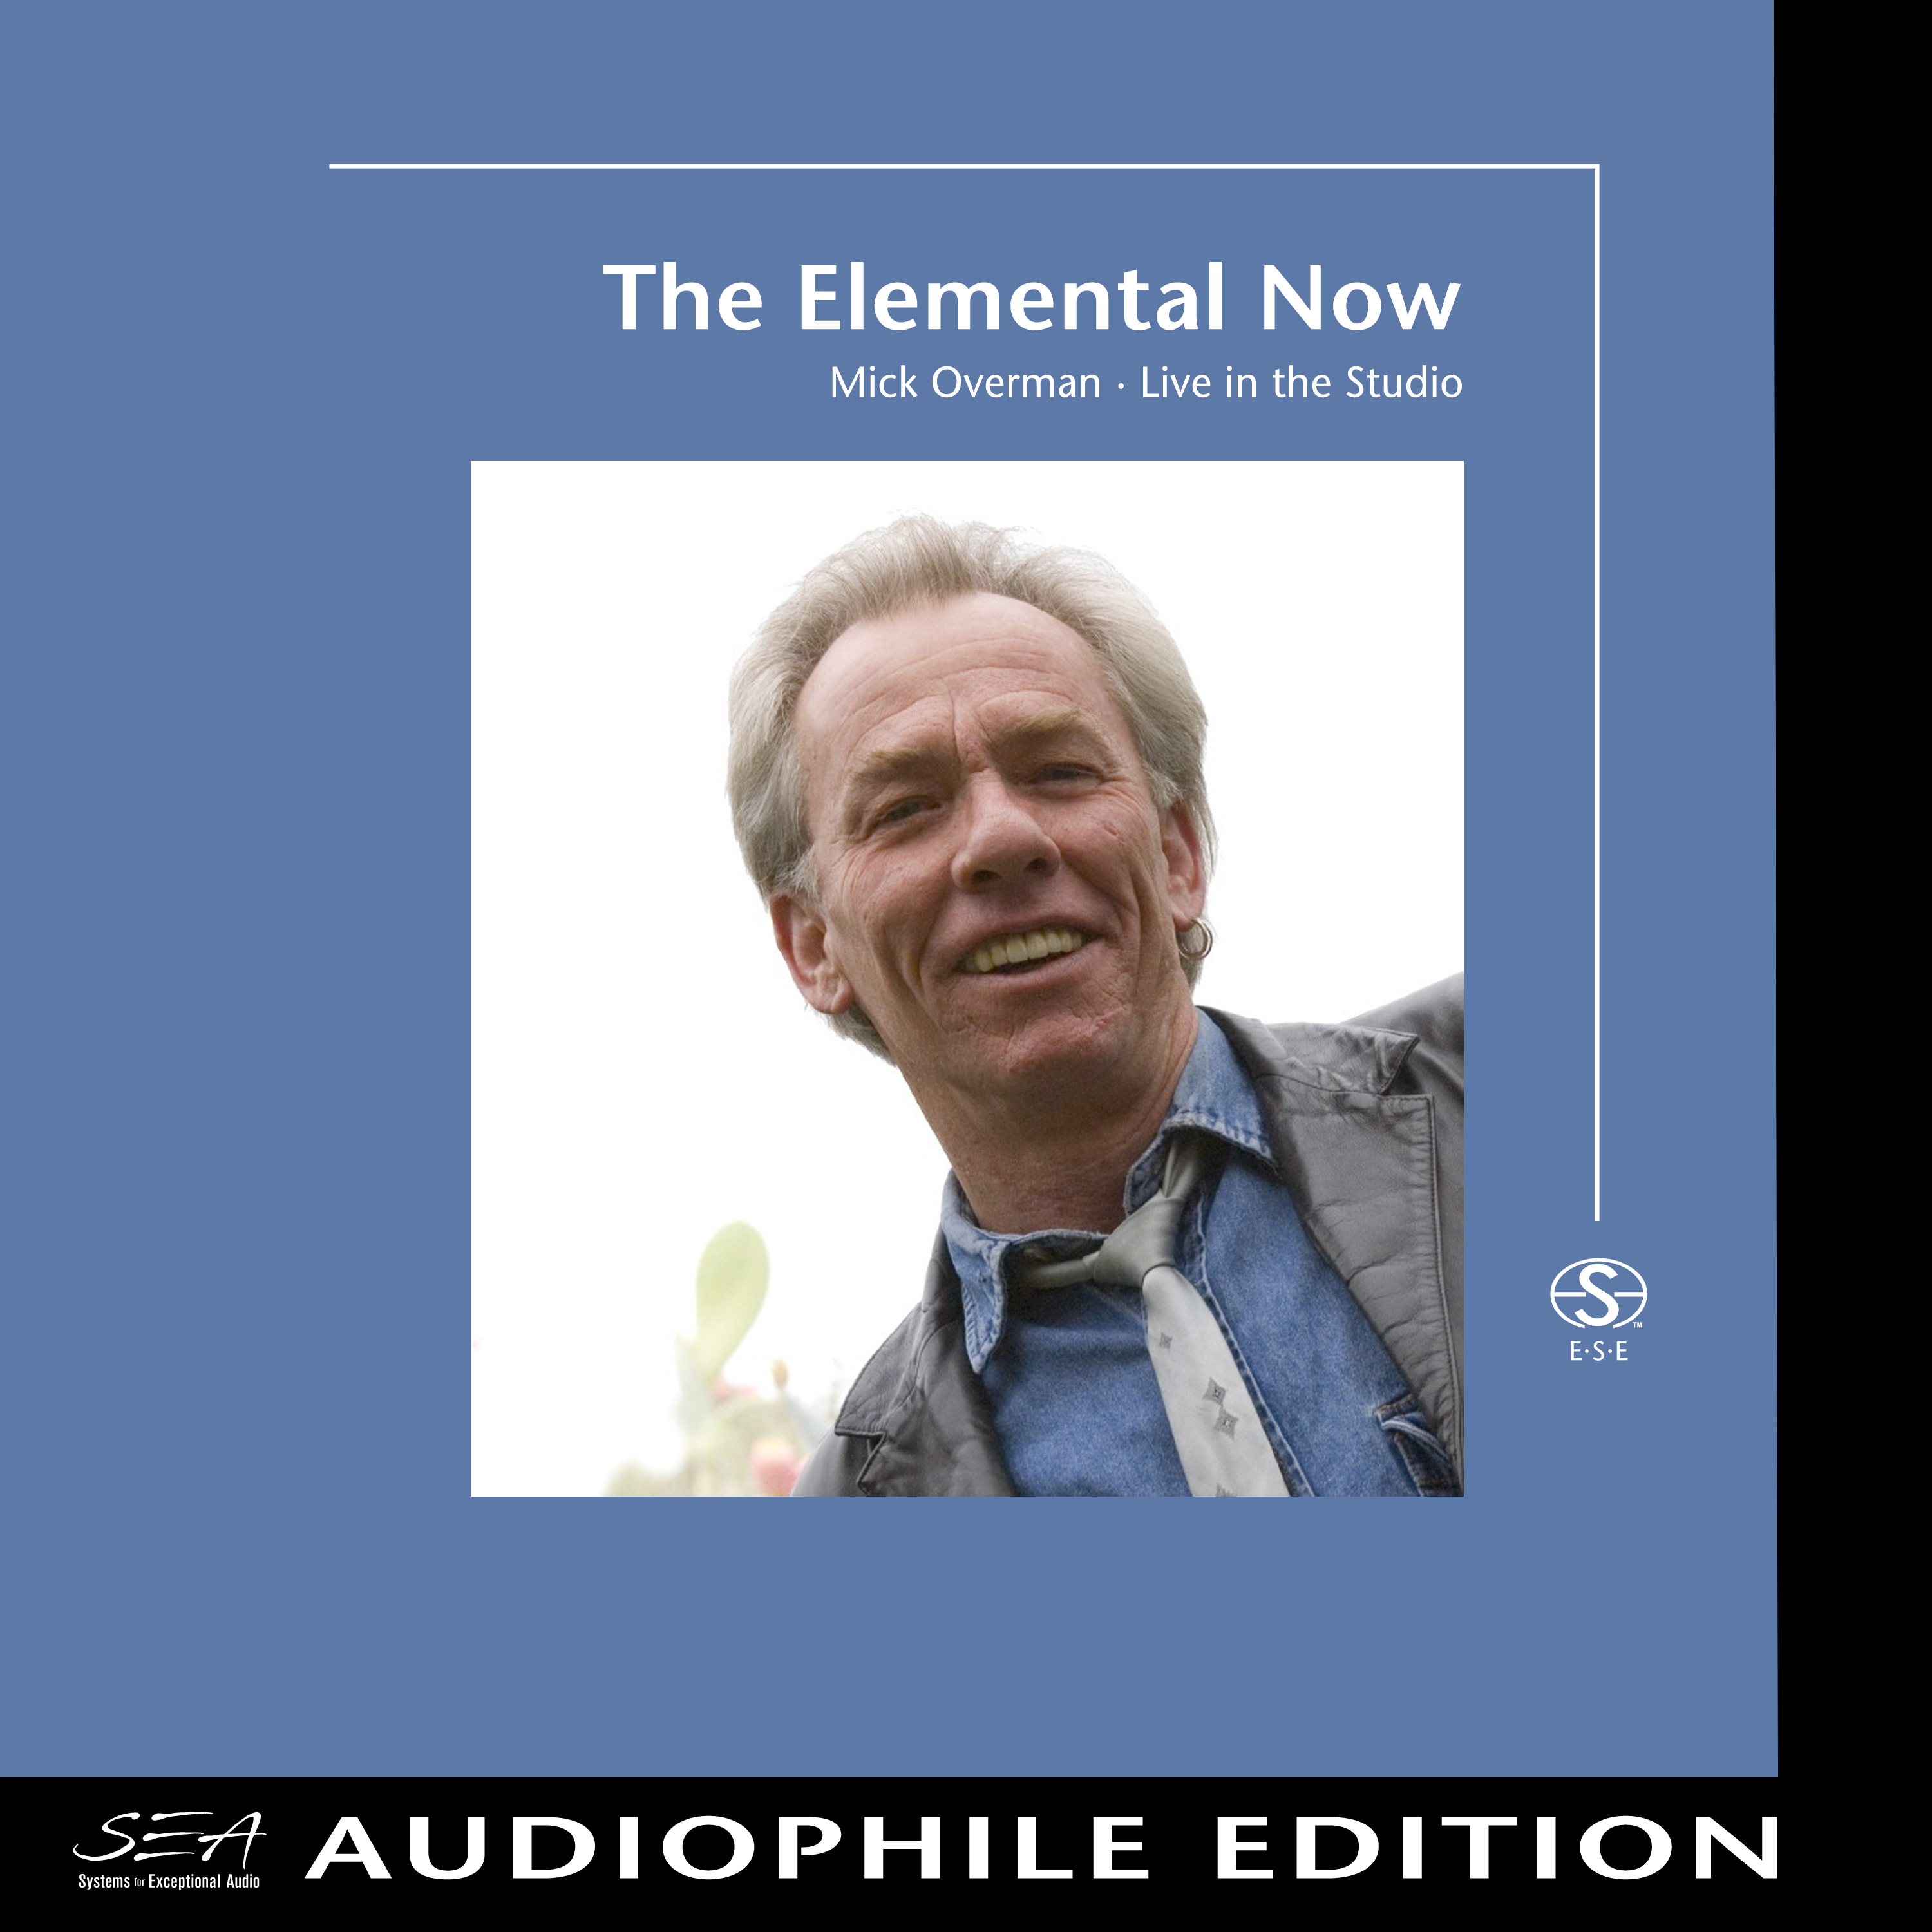 Mick Overman - The Elemental Now - Cover Image